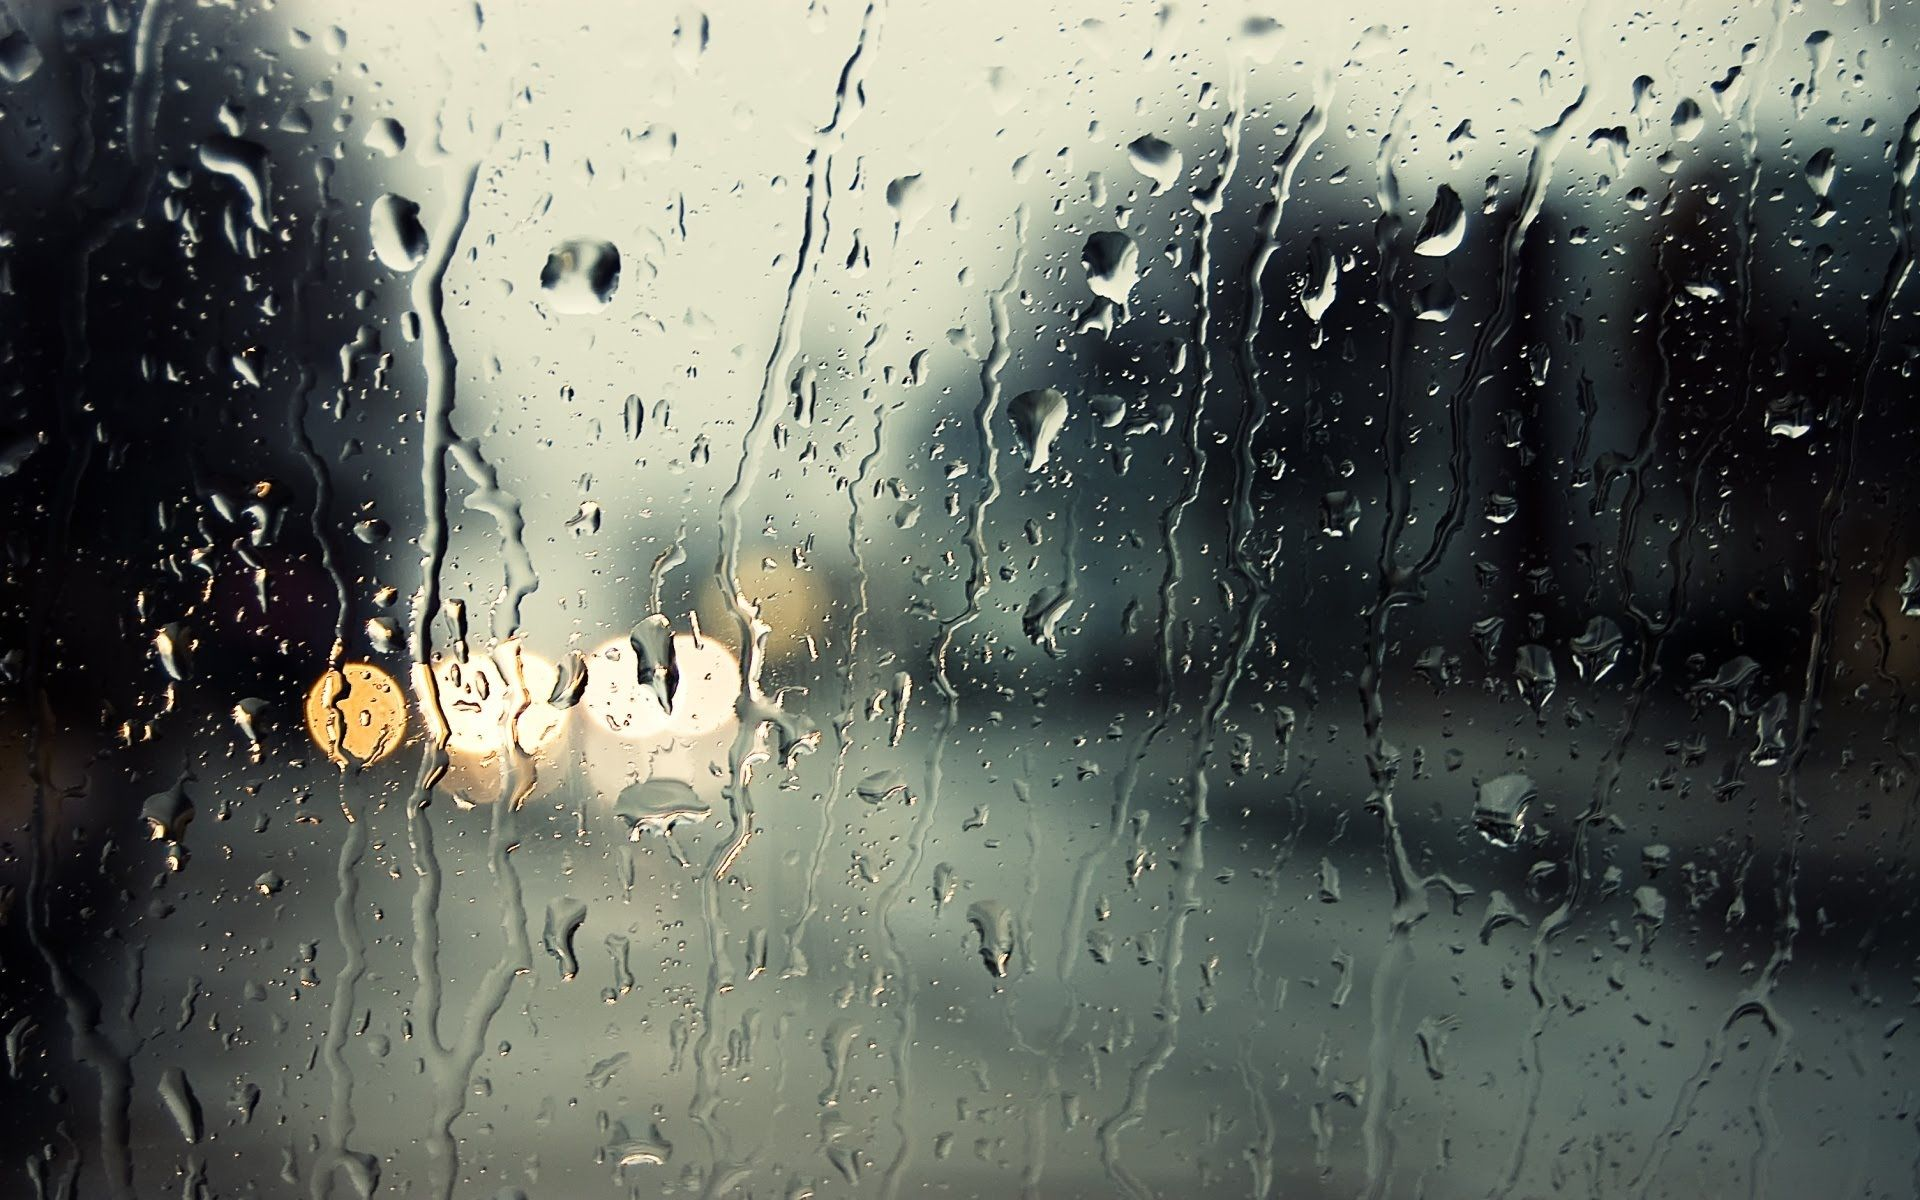 Relaxing Washing Machine Shower And Rain Sounds Meditate Online Rain Wallpapers Rainy Mood Abstract